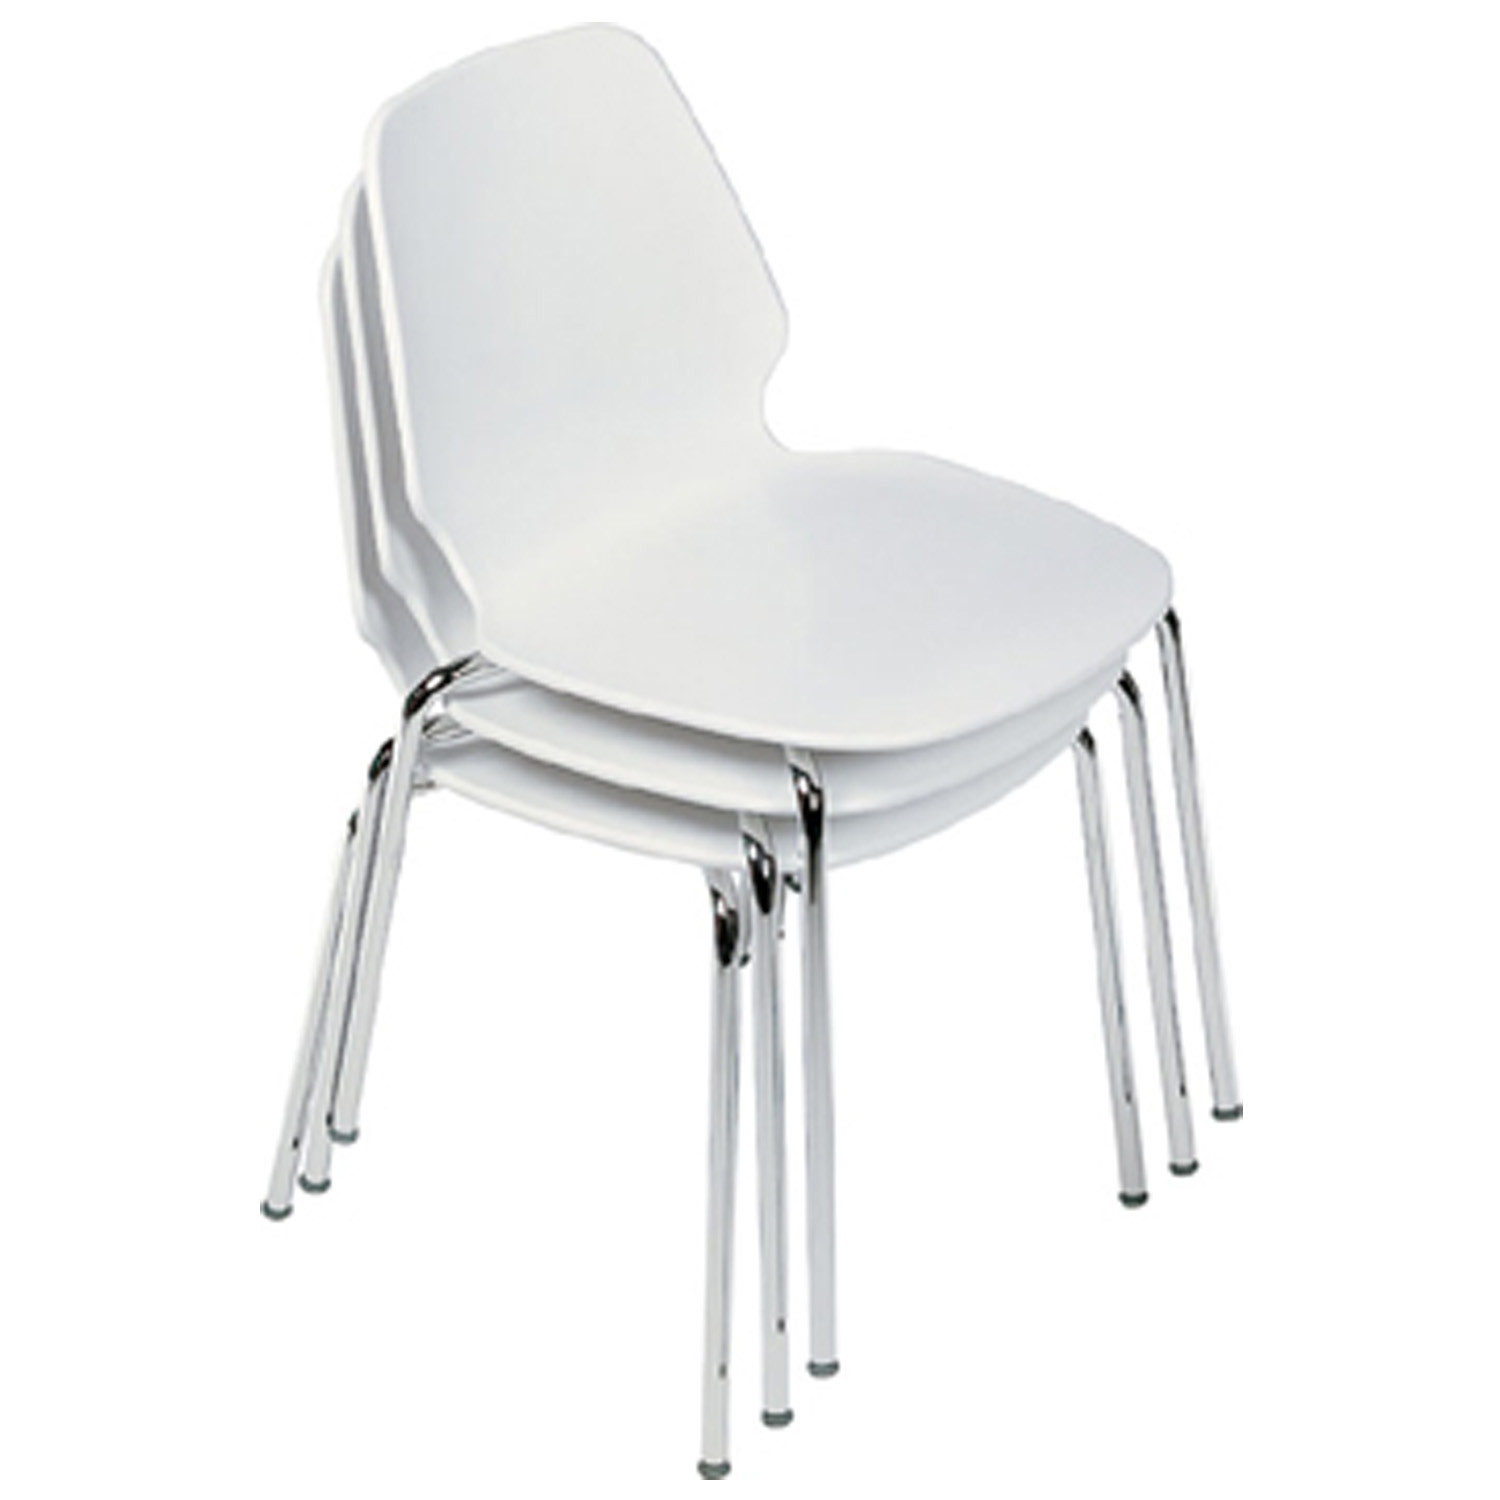 Selinunte 4-Leg Chair Stacks up to 10